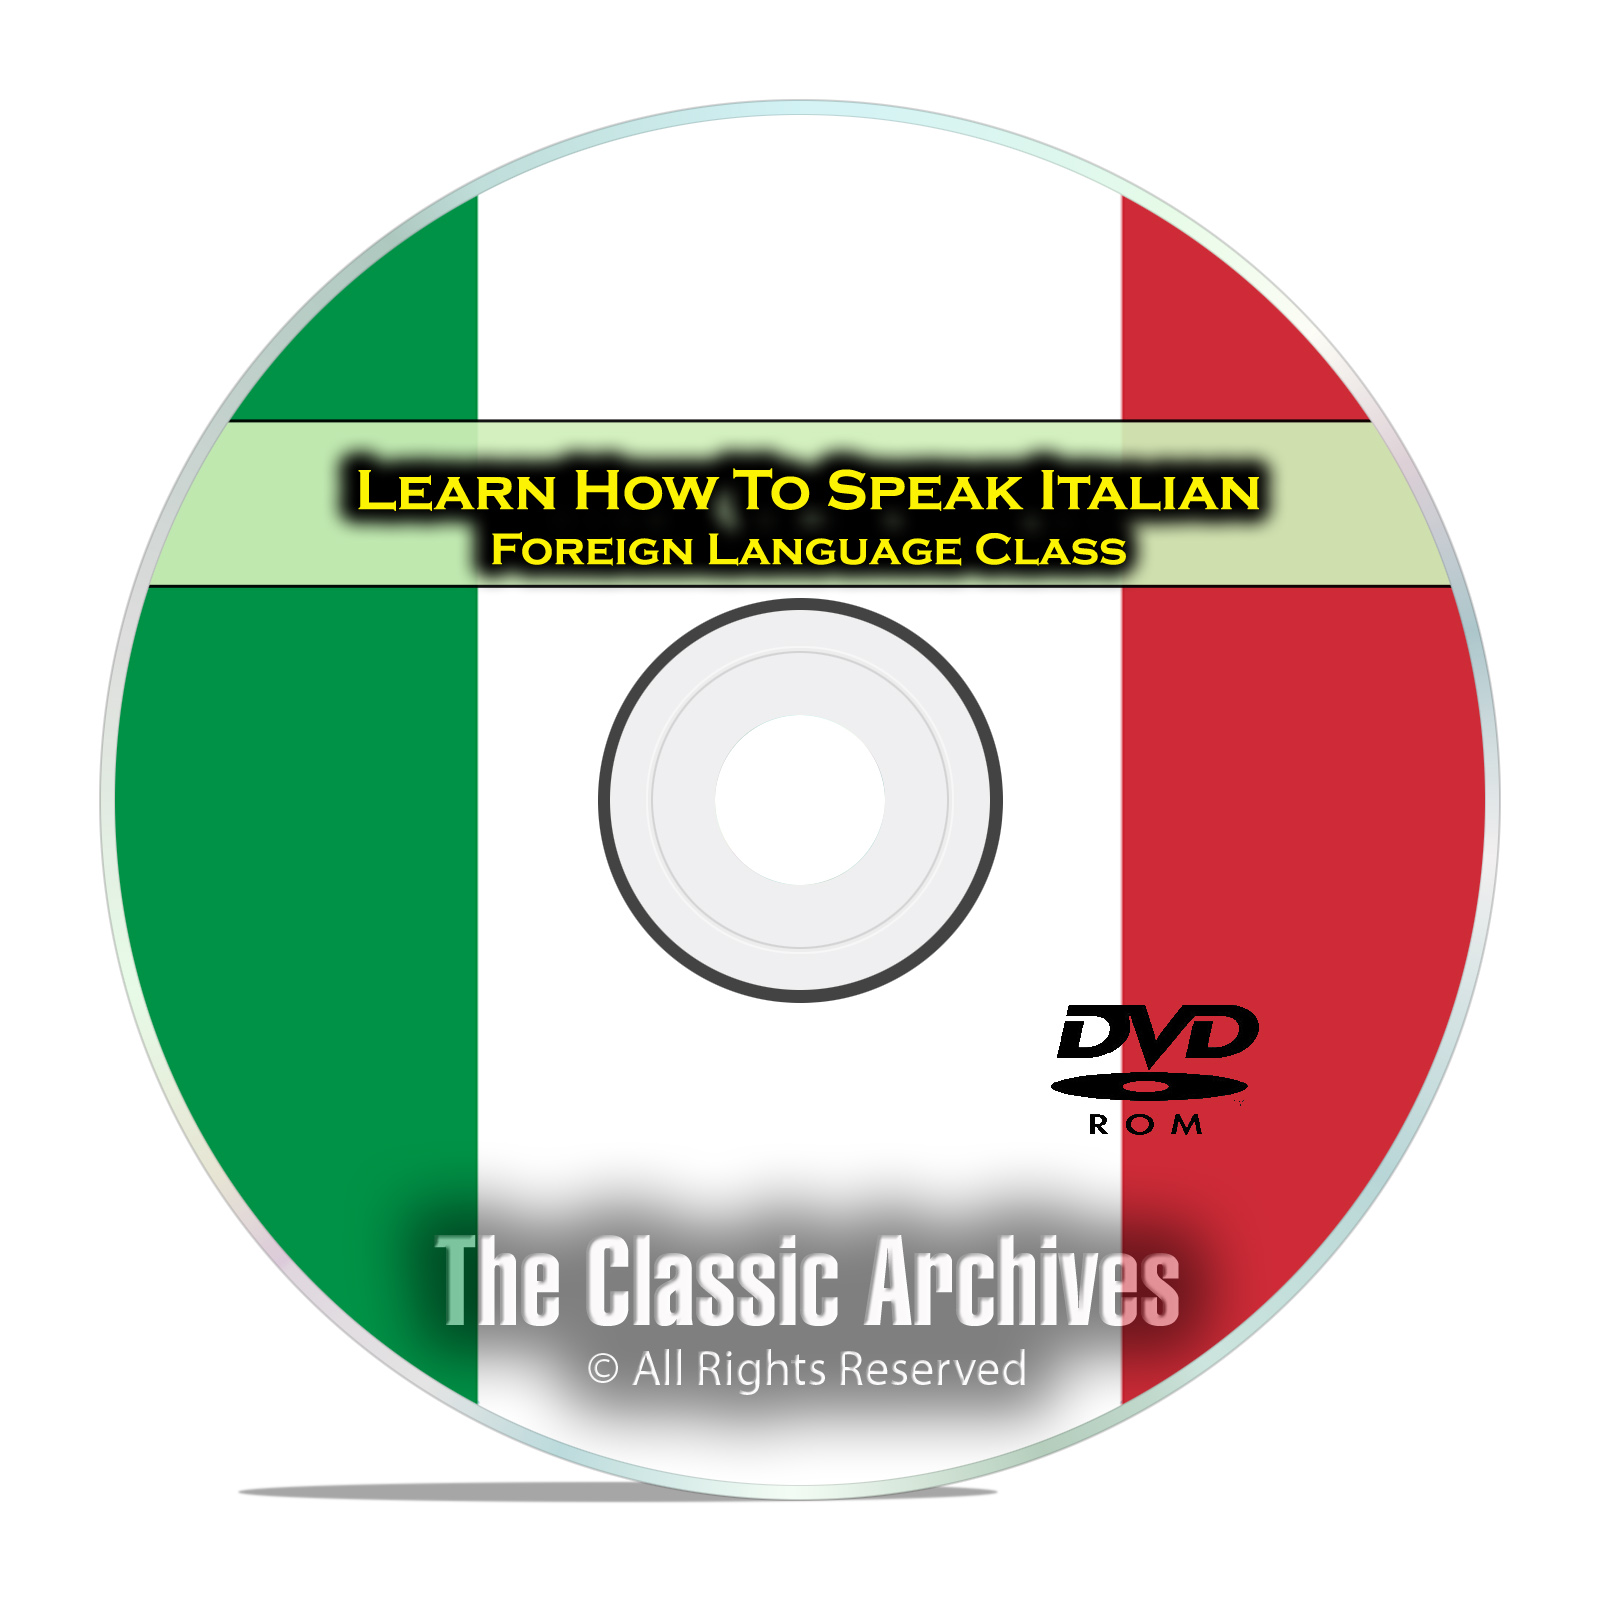 Learn How To Speak Italian, Fast Foreign Language Training Course, DVD - Click Image to Close